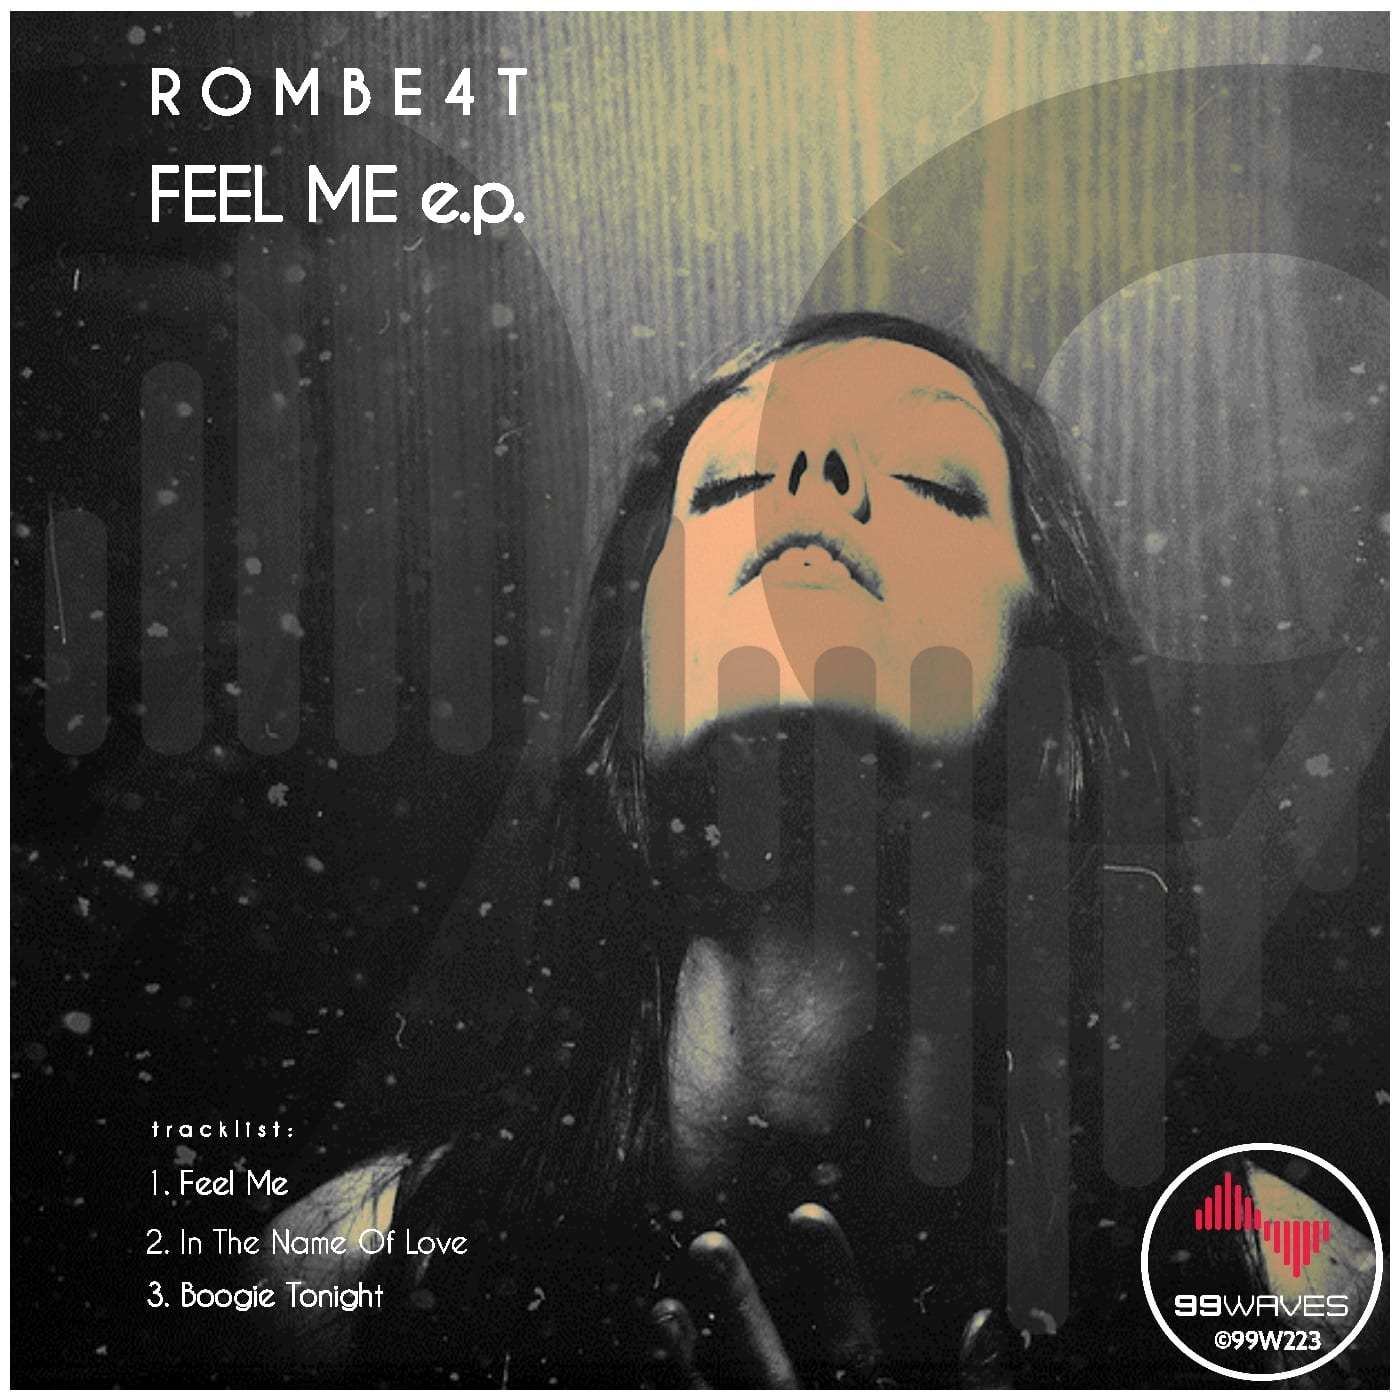 ROMBE4T ABOUT HOUSE MUSIC, TAKING A SABBATICAL AND THE FEEL ME EP.